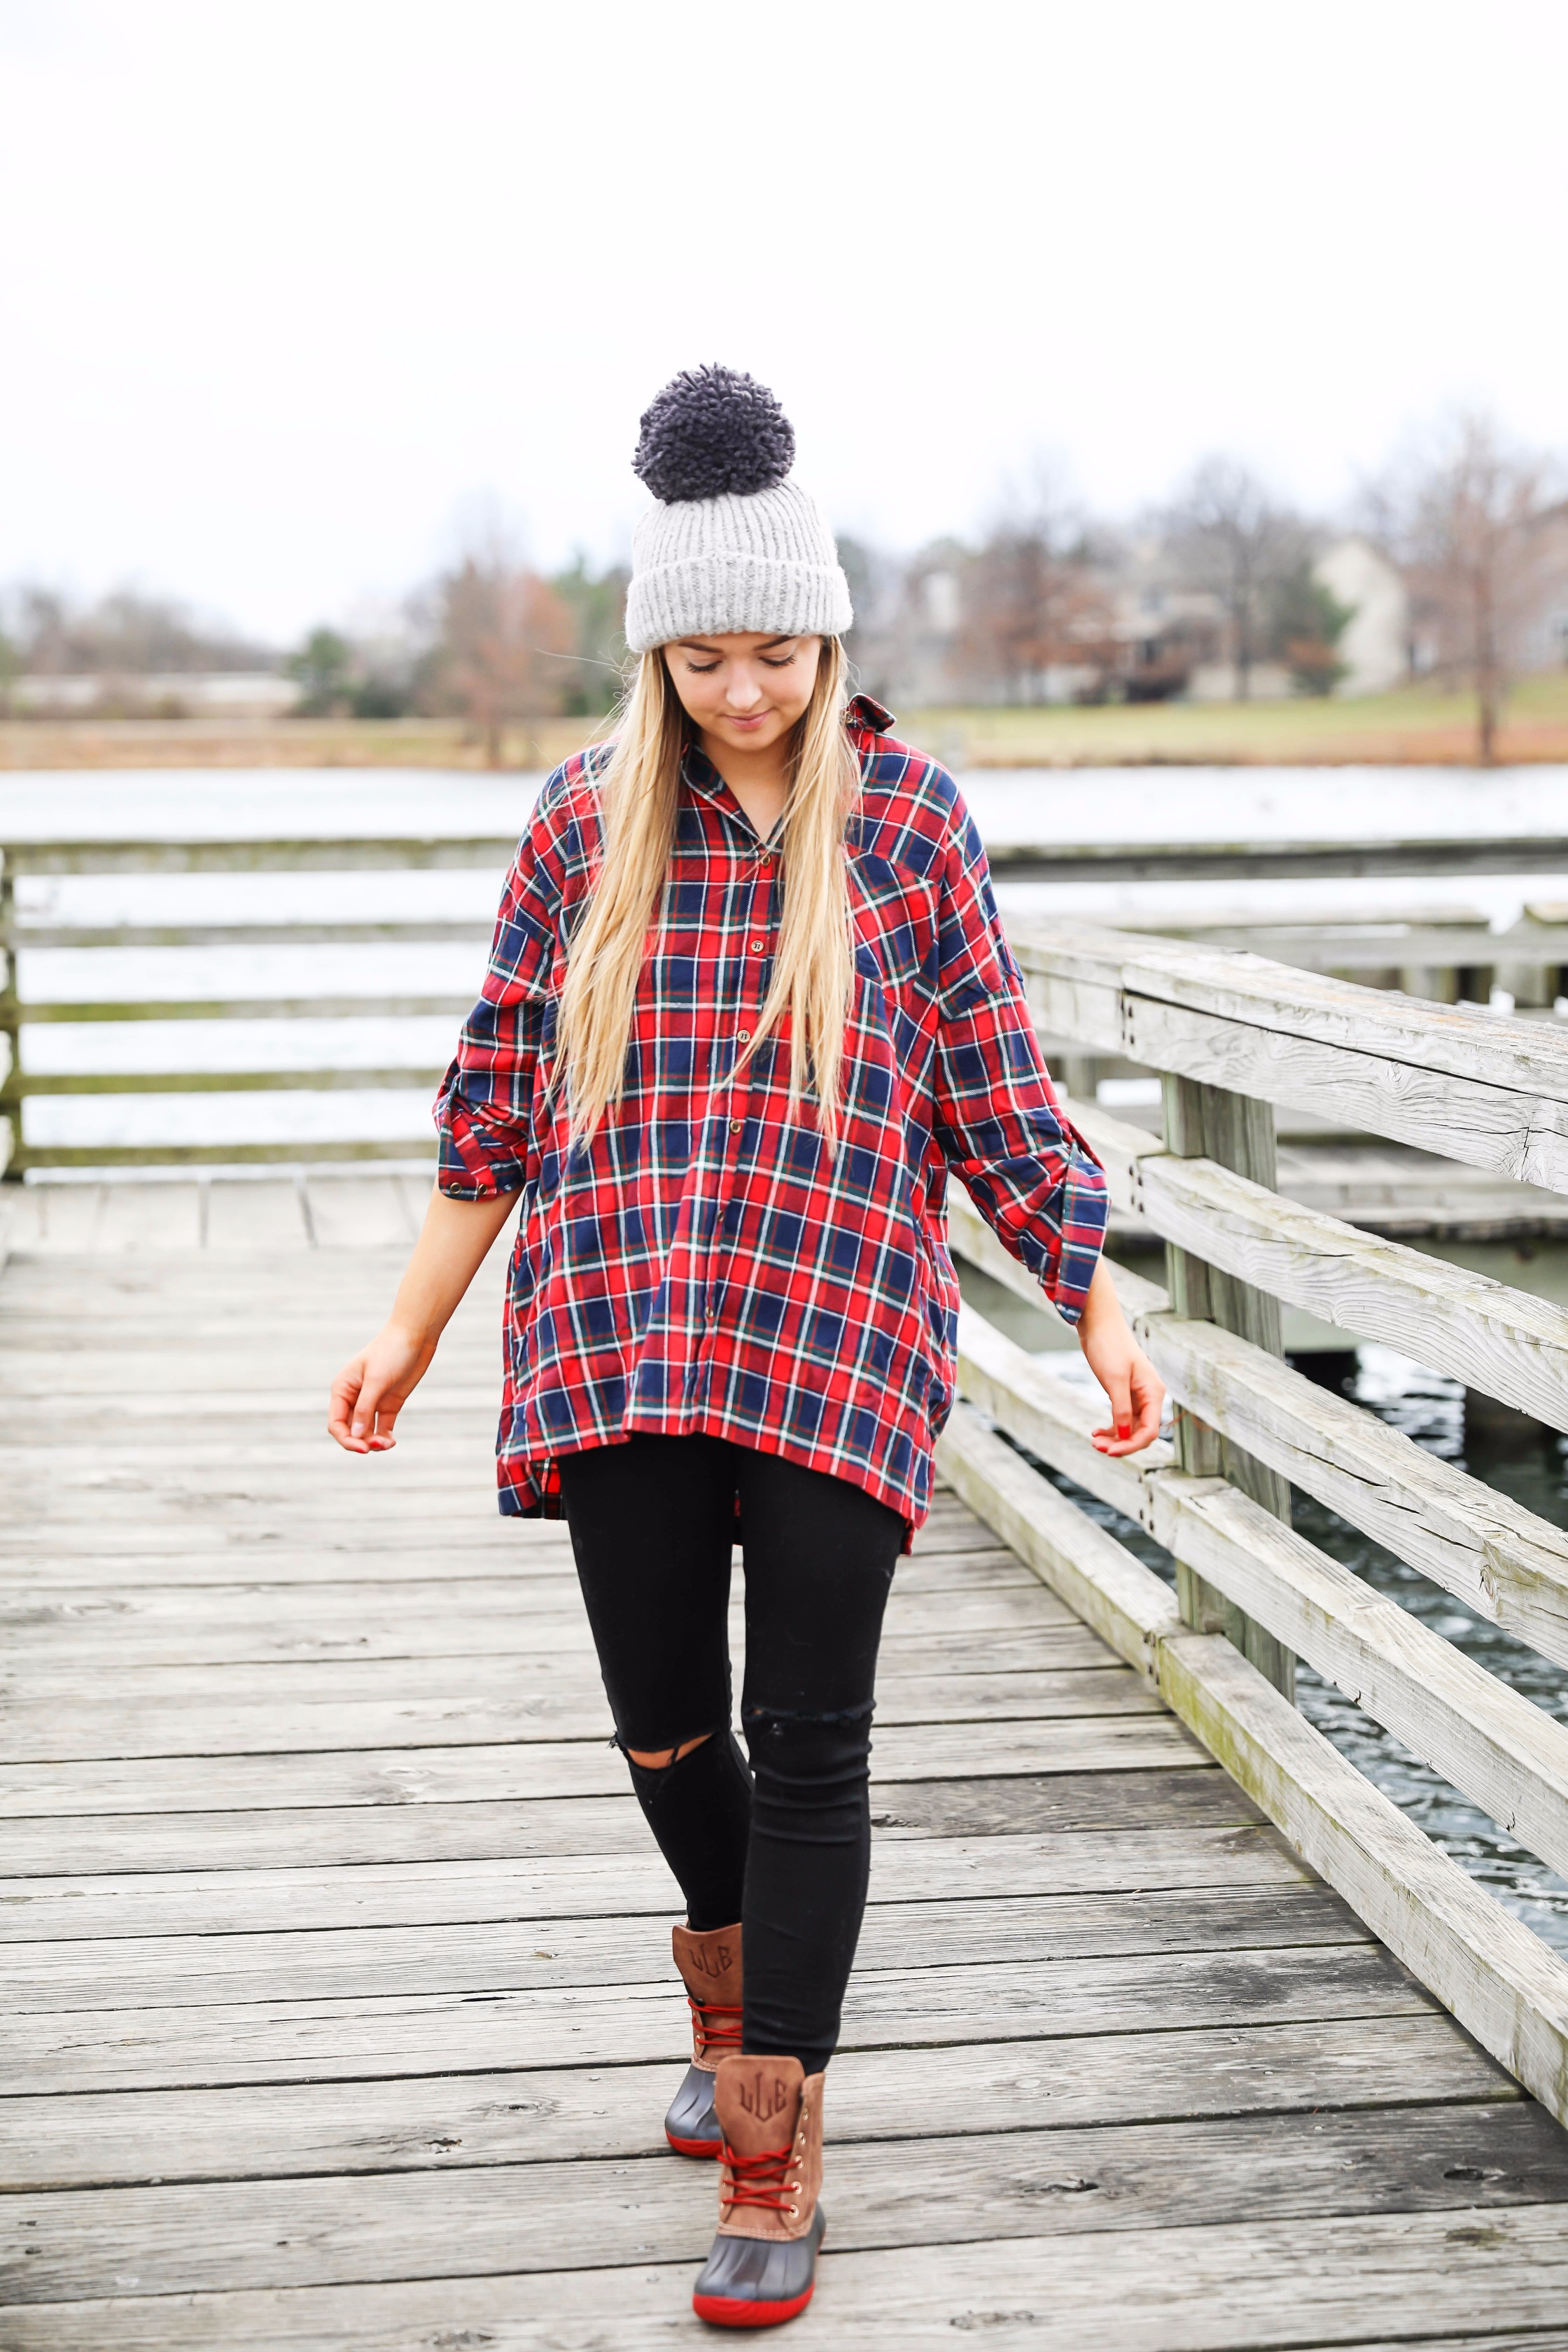 The Outfit That Makes Me Want To Go Camping Flannel